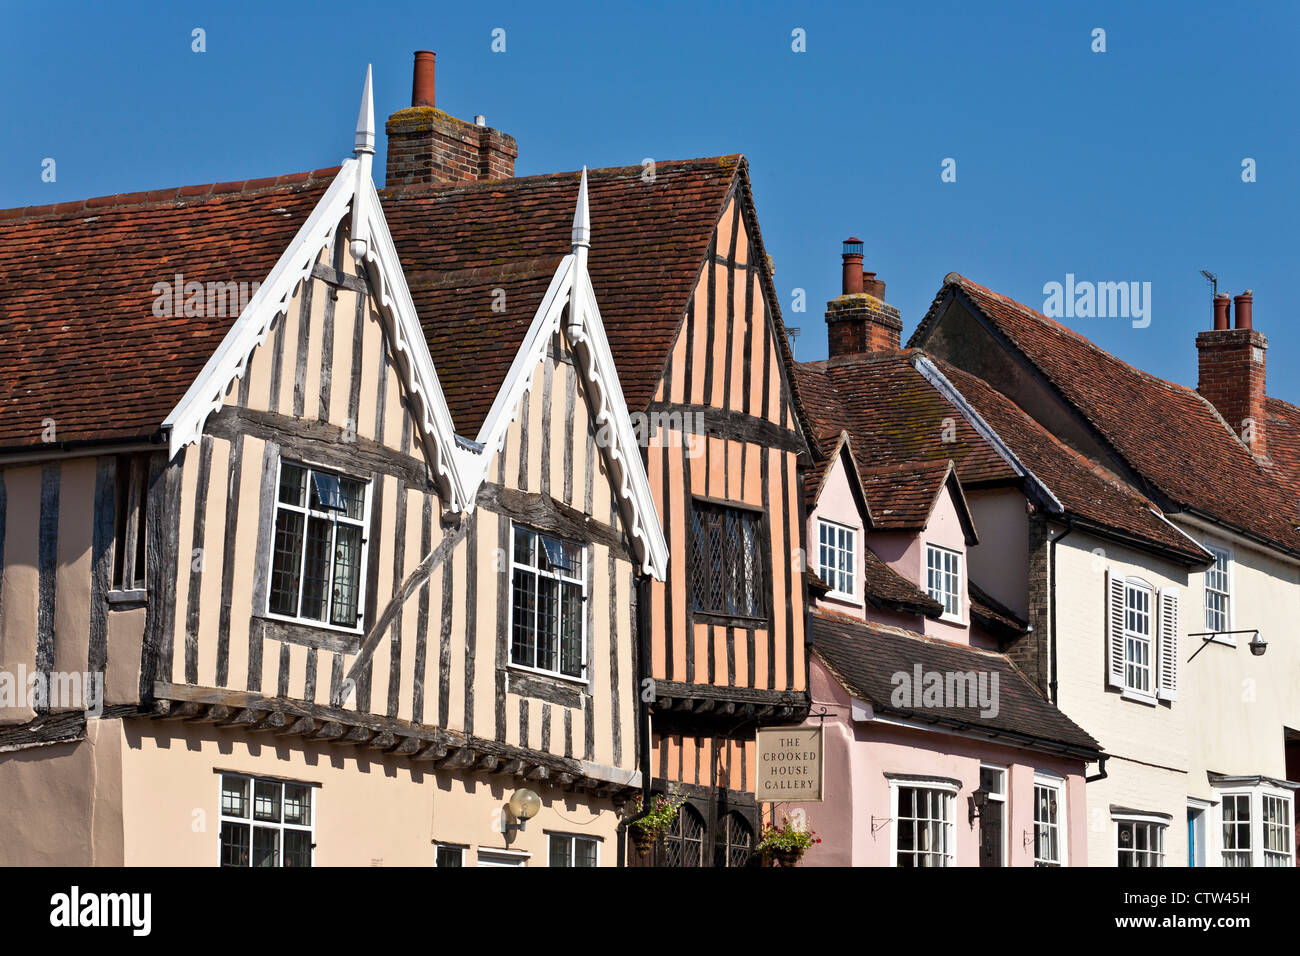 Long View of Row of Mediieval Buildings including Timber Framed Cottages in Lavenham - Stock Image